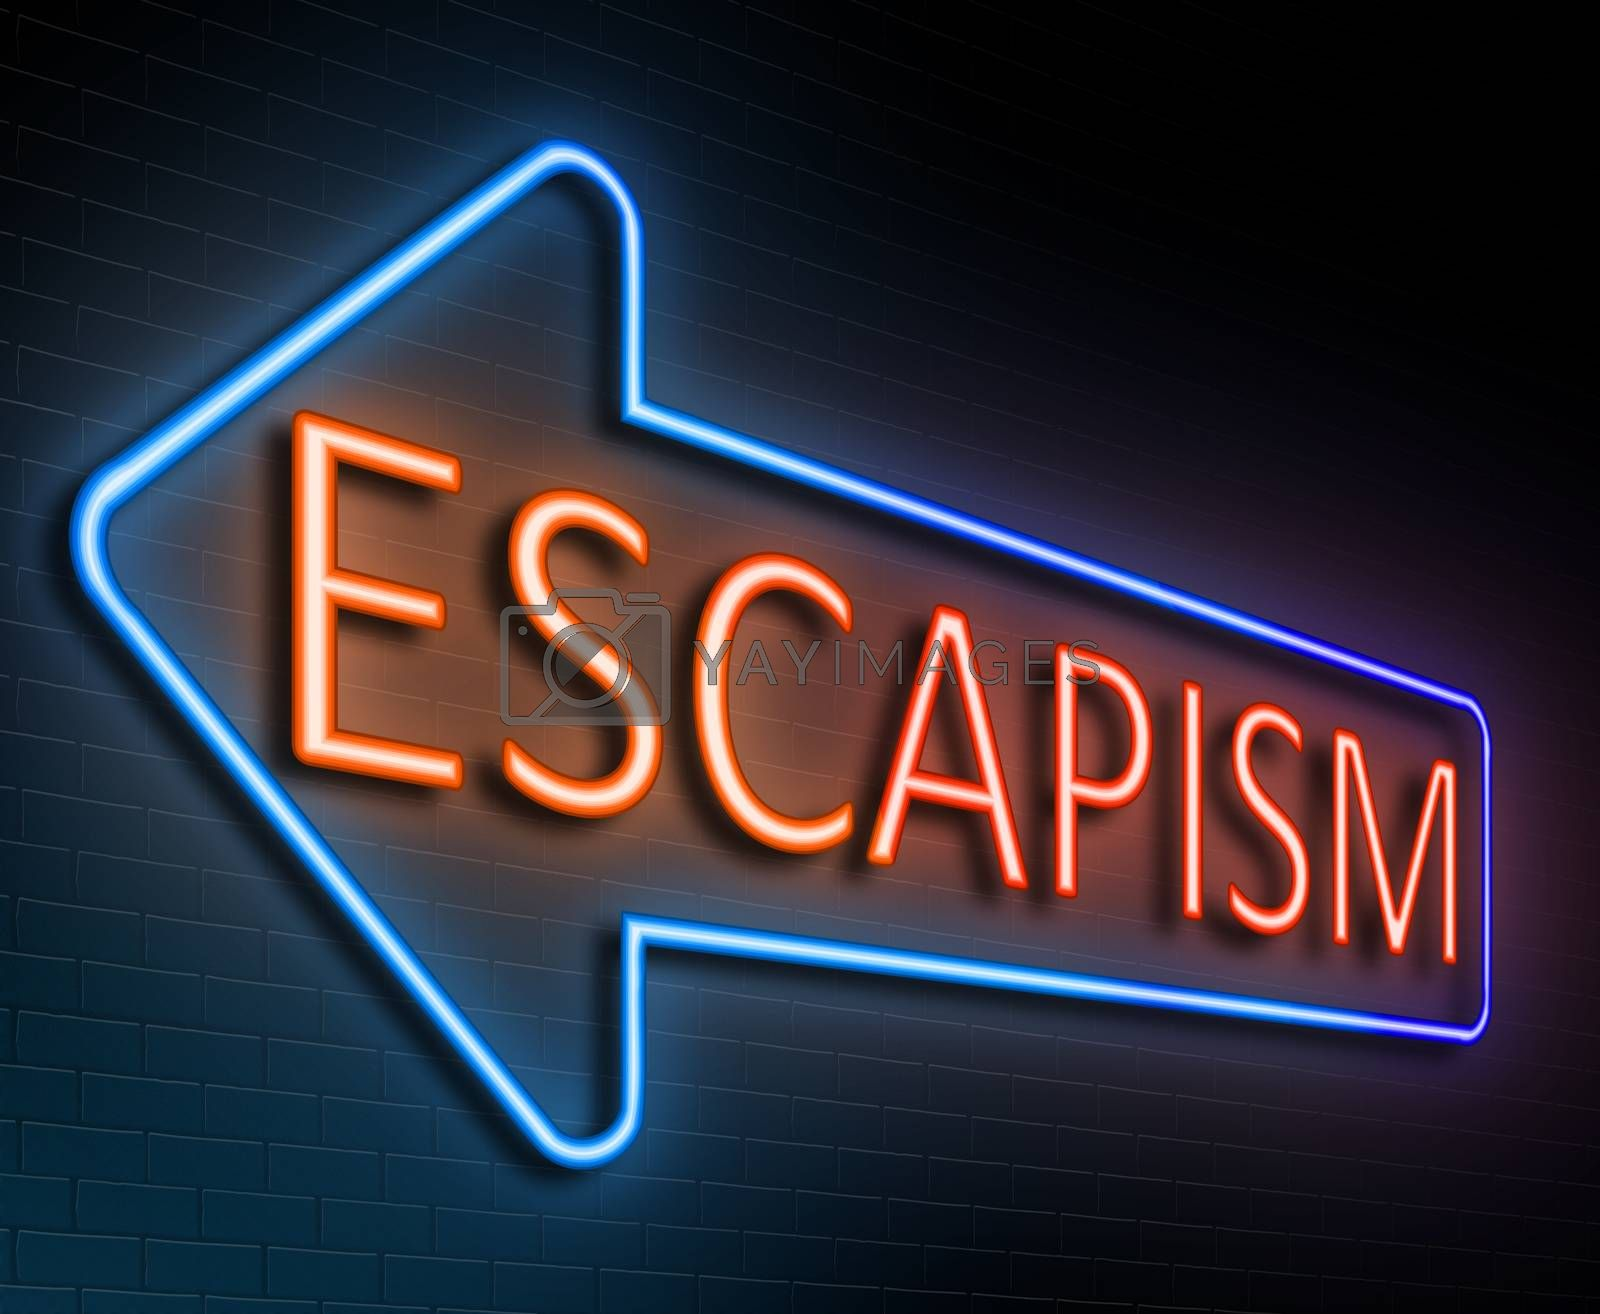 Illustration depicting an illuminated neon sign with an escapism concept.